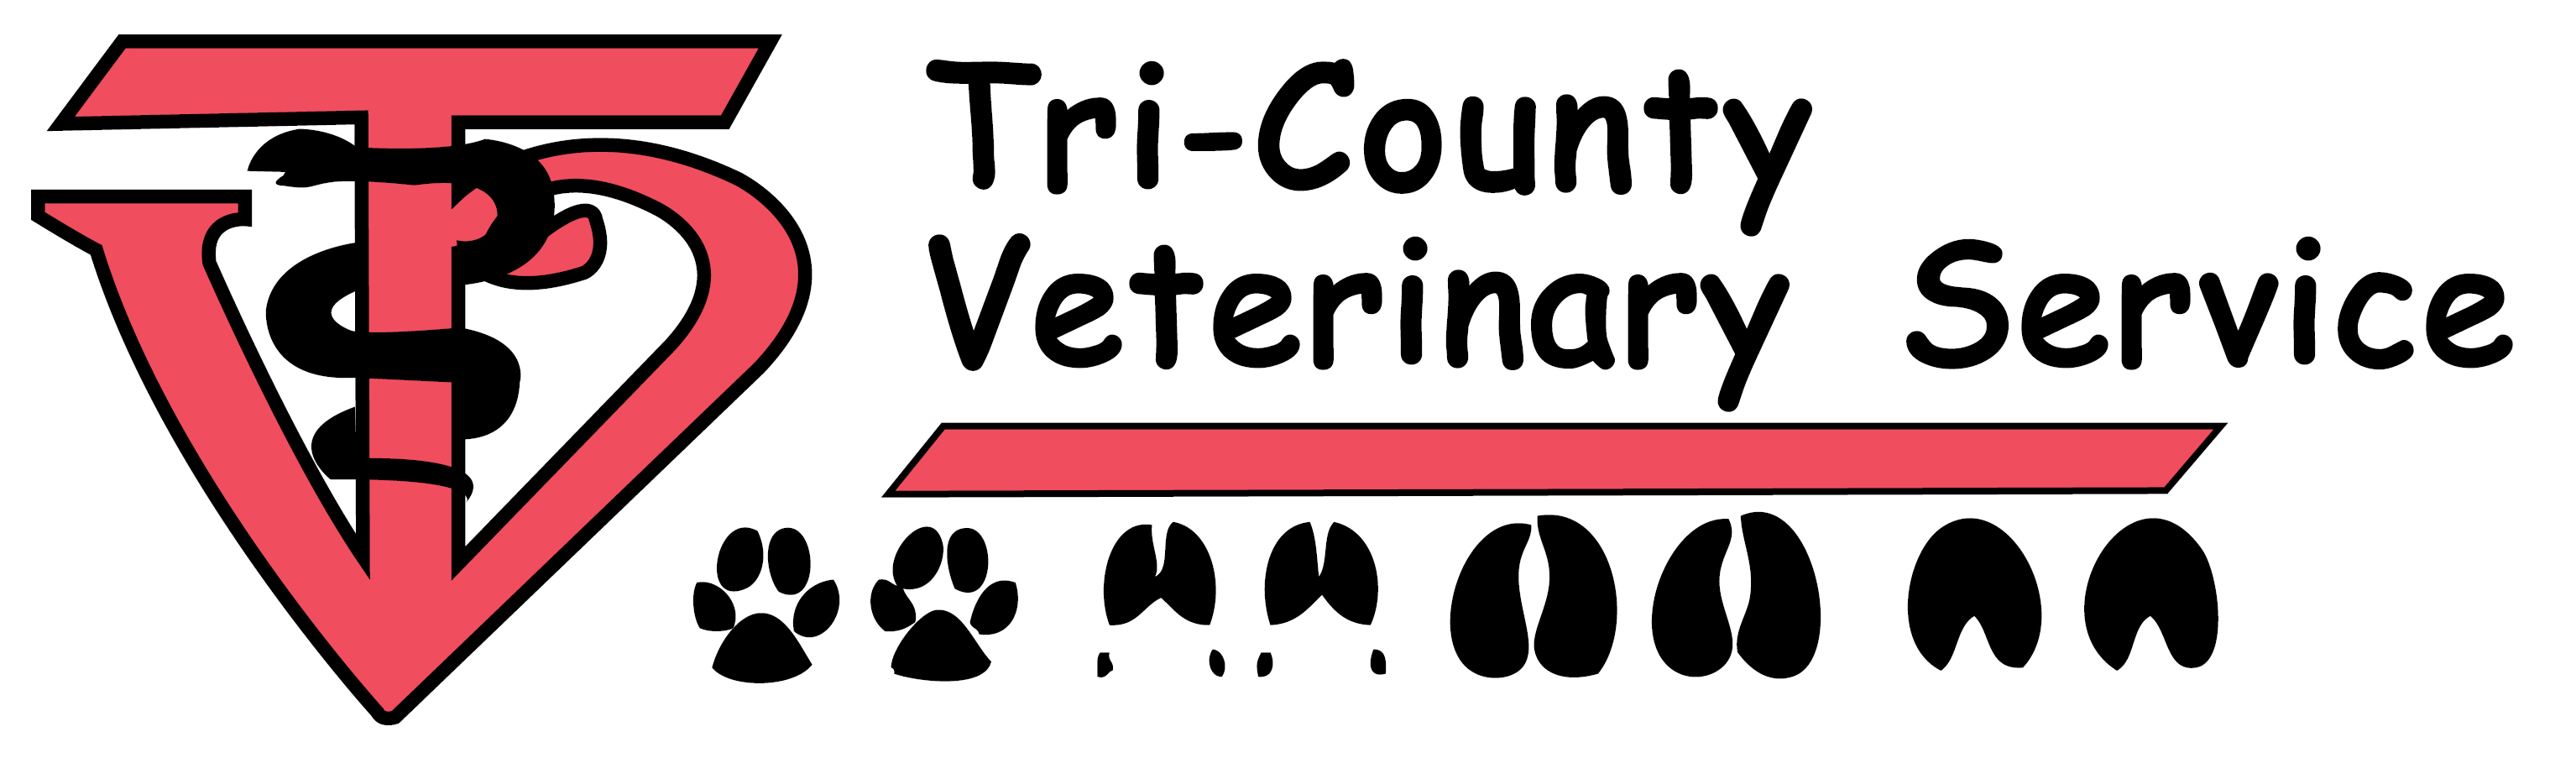 Tri-County Veterinary Service